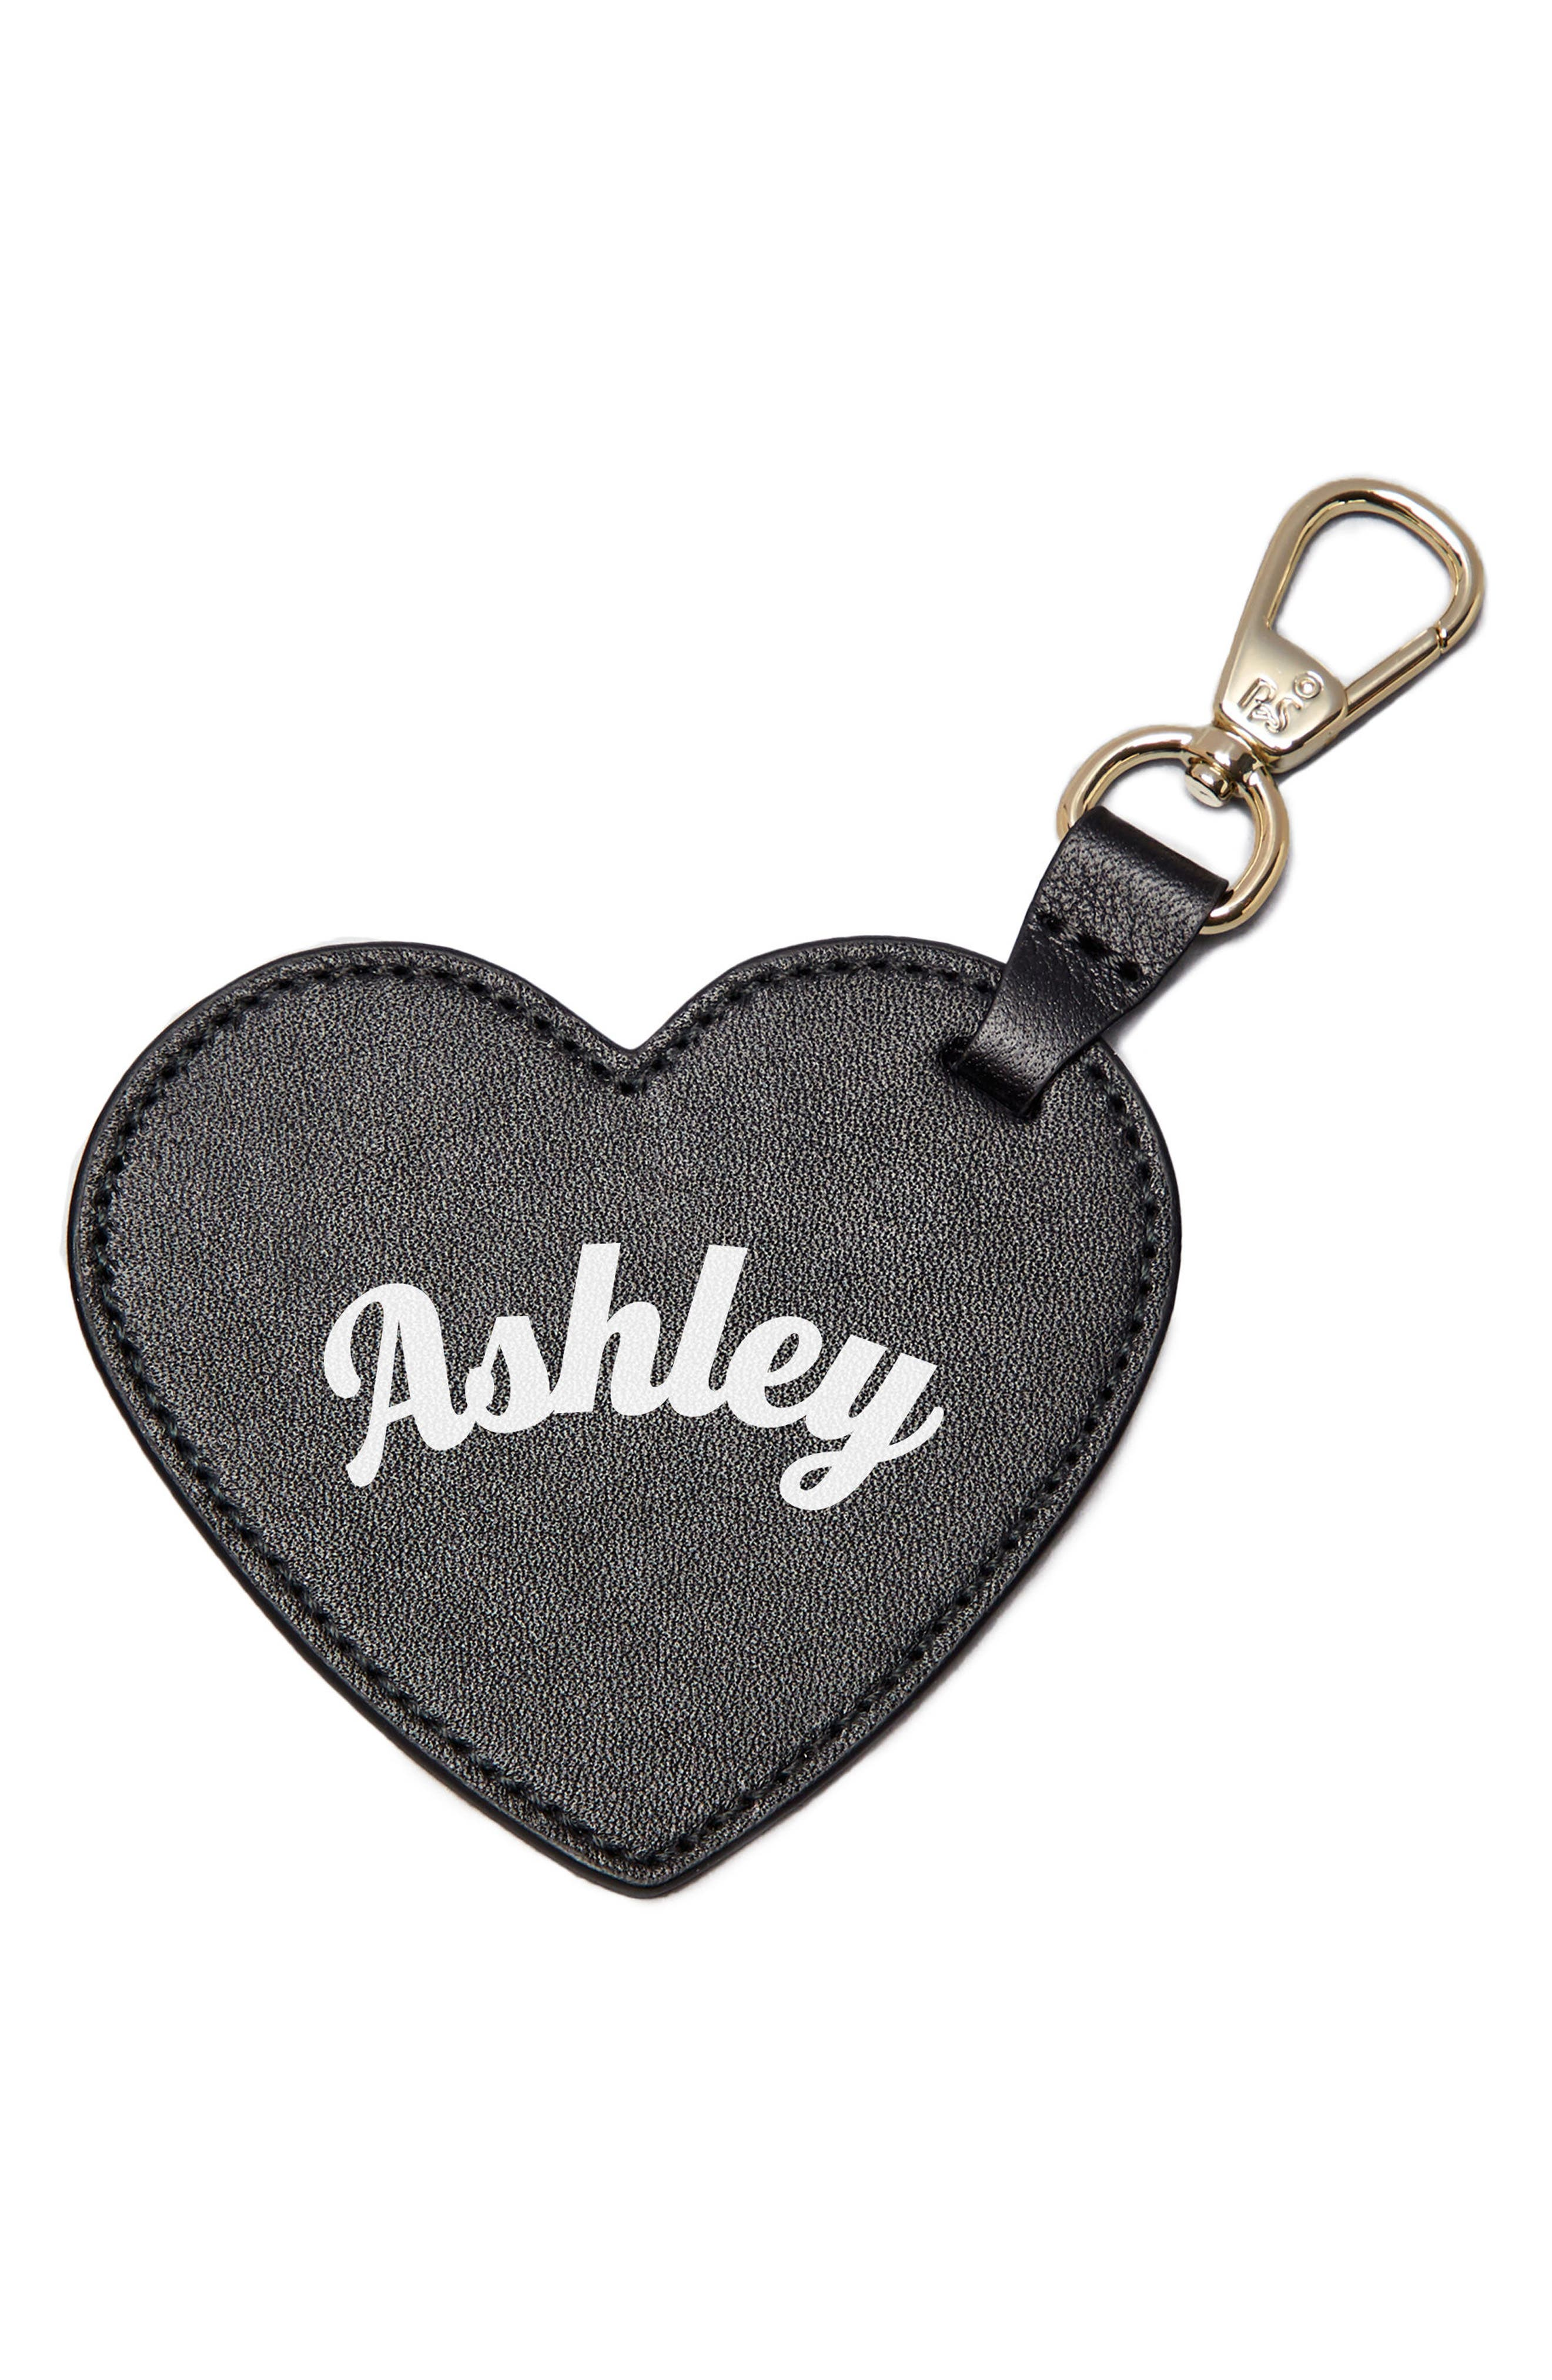 Smaller Heart Personalized Bag Charm,                         Main,                         color, Noir/ White